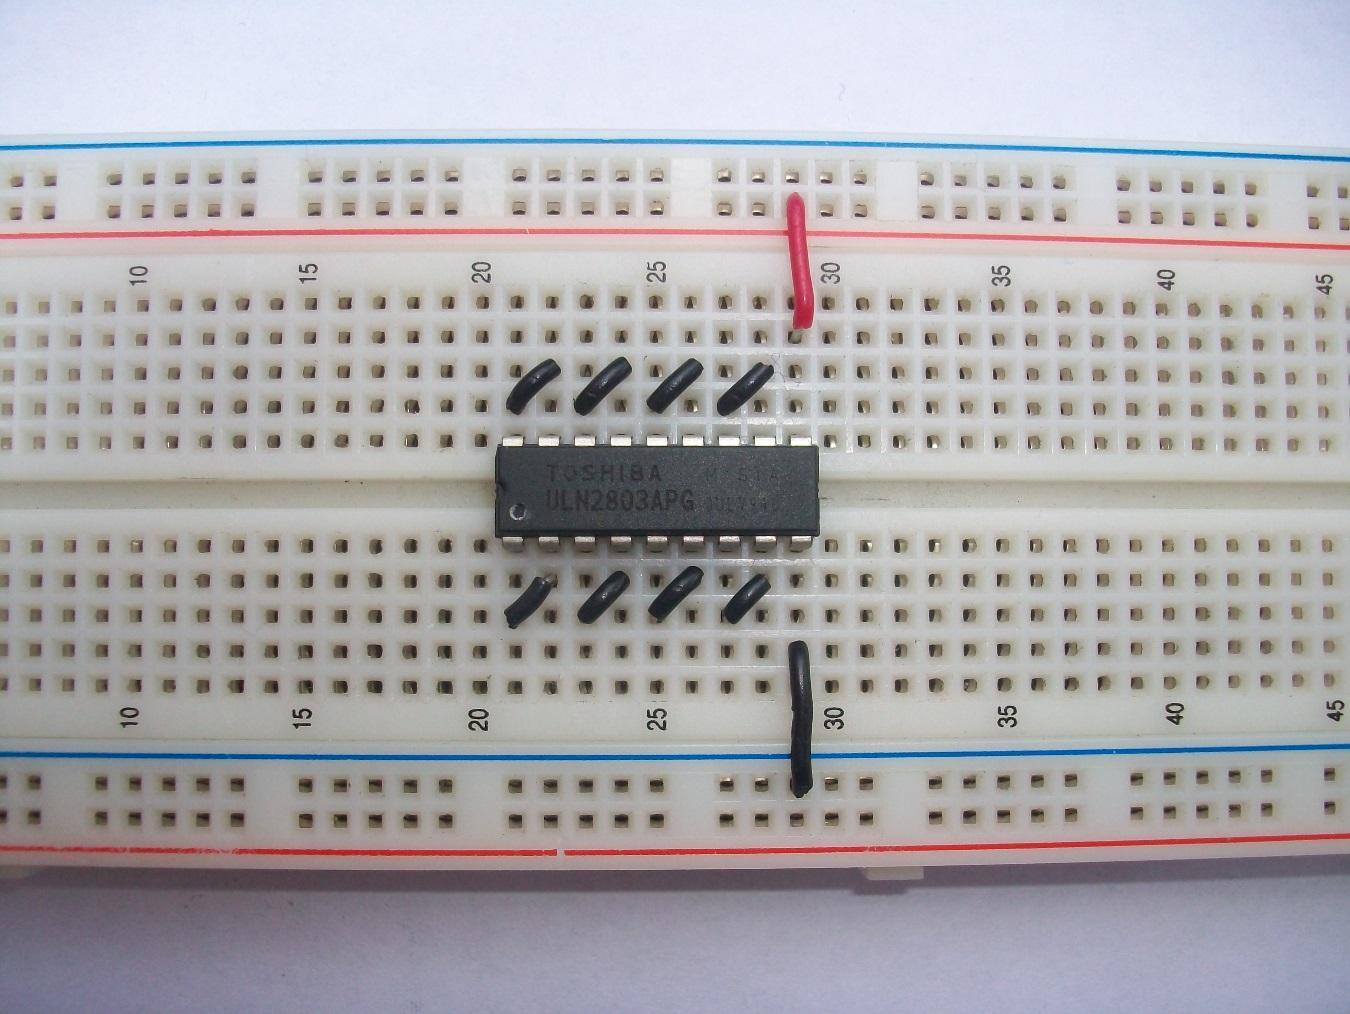 Experiment Controlling A Stepper Motor With Your Muscles Arduinorealtimeclockcircuit Breadboard Schematic First Connect Pin 9 Gnd And 10 Vcc To The Then Join Following Pins As Shown In Image Below 1 2 3 4 5 6 7 8 11 12 13 14